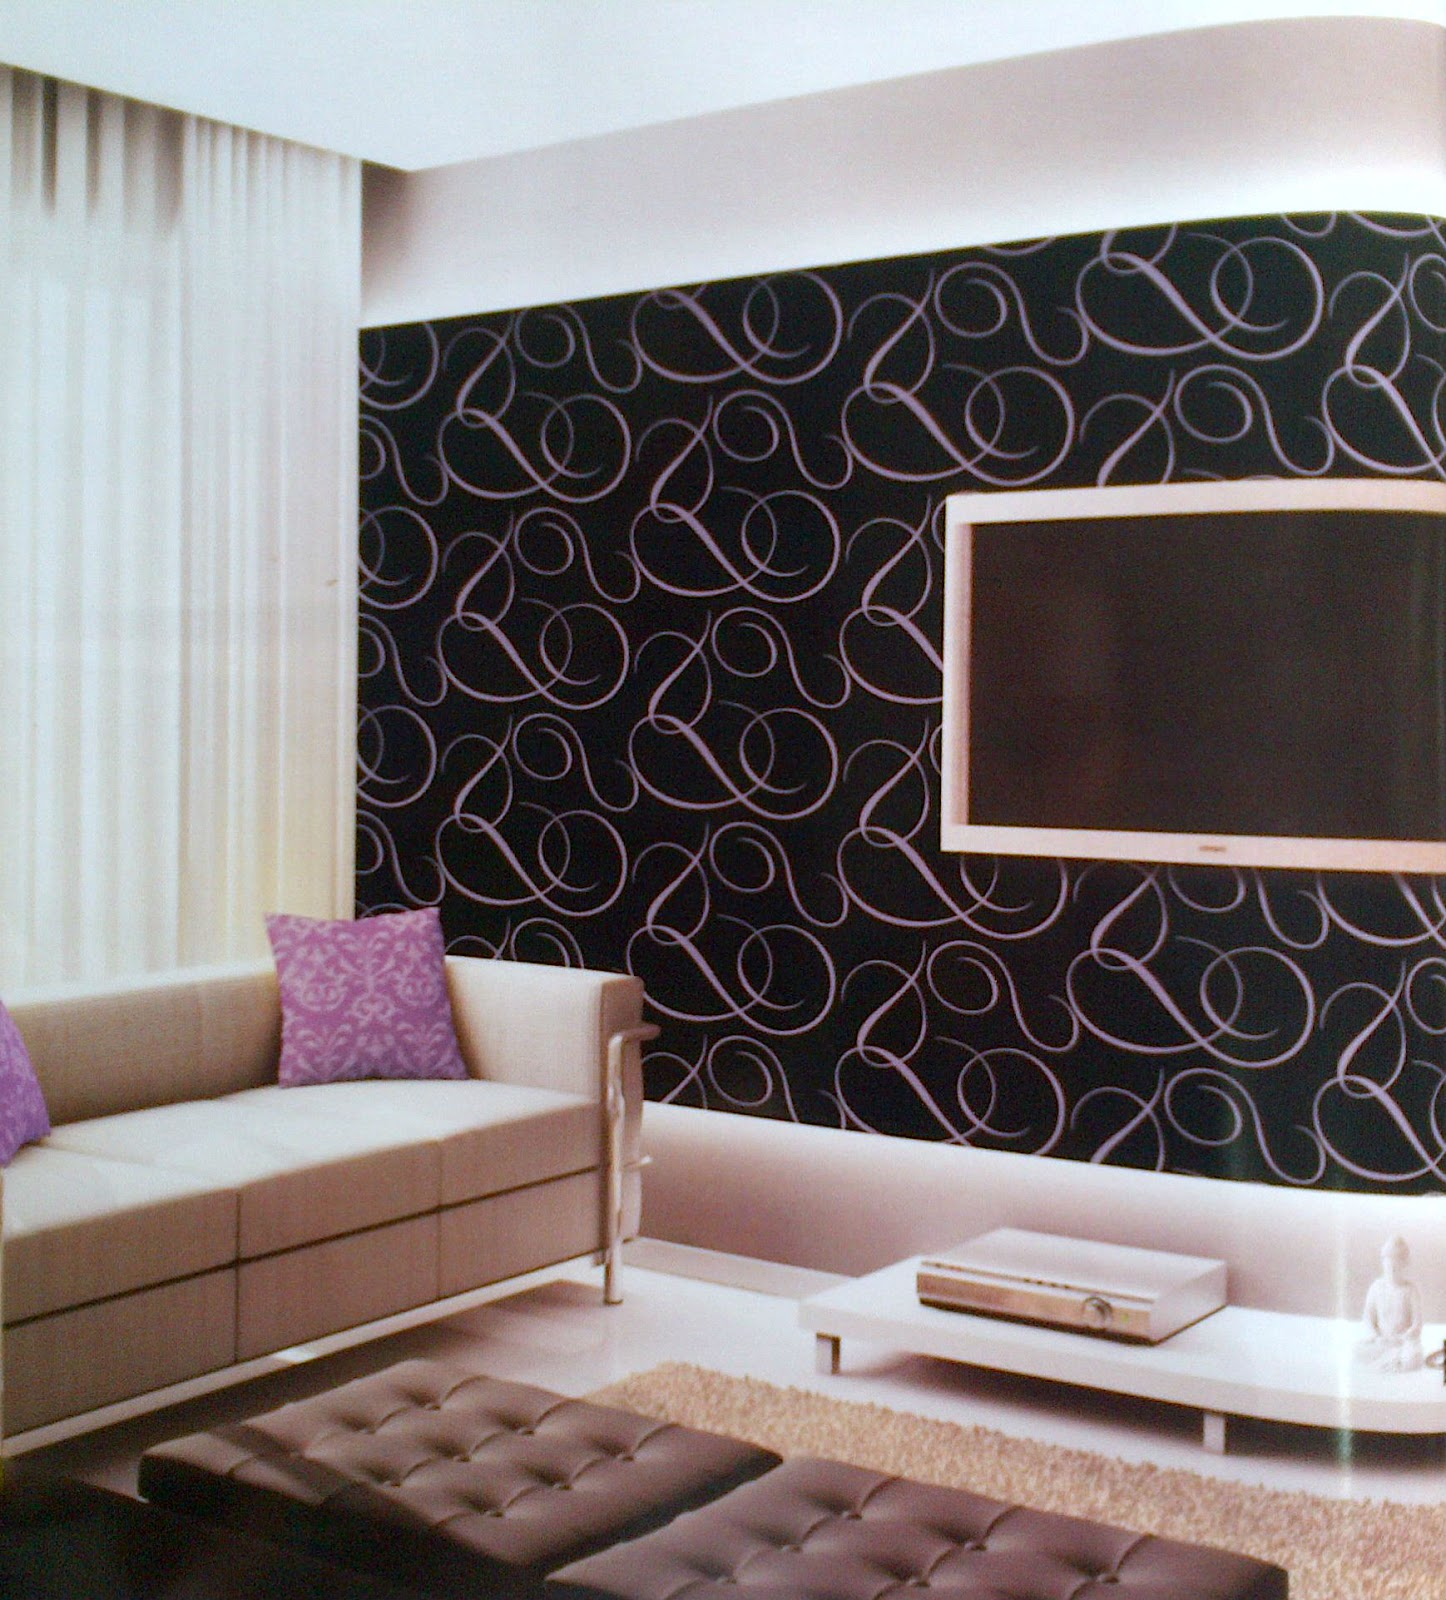 Hauptundneben contoh gambar wallpaper dinding minimalis murah for Wallpaper home murah